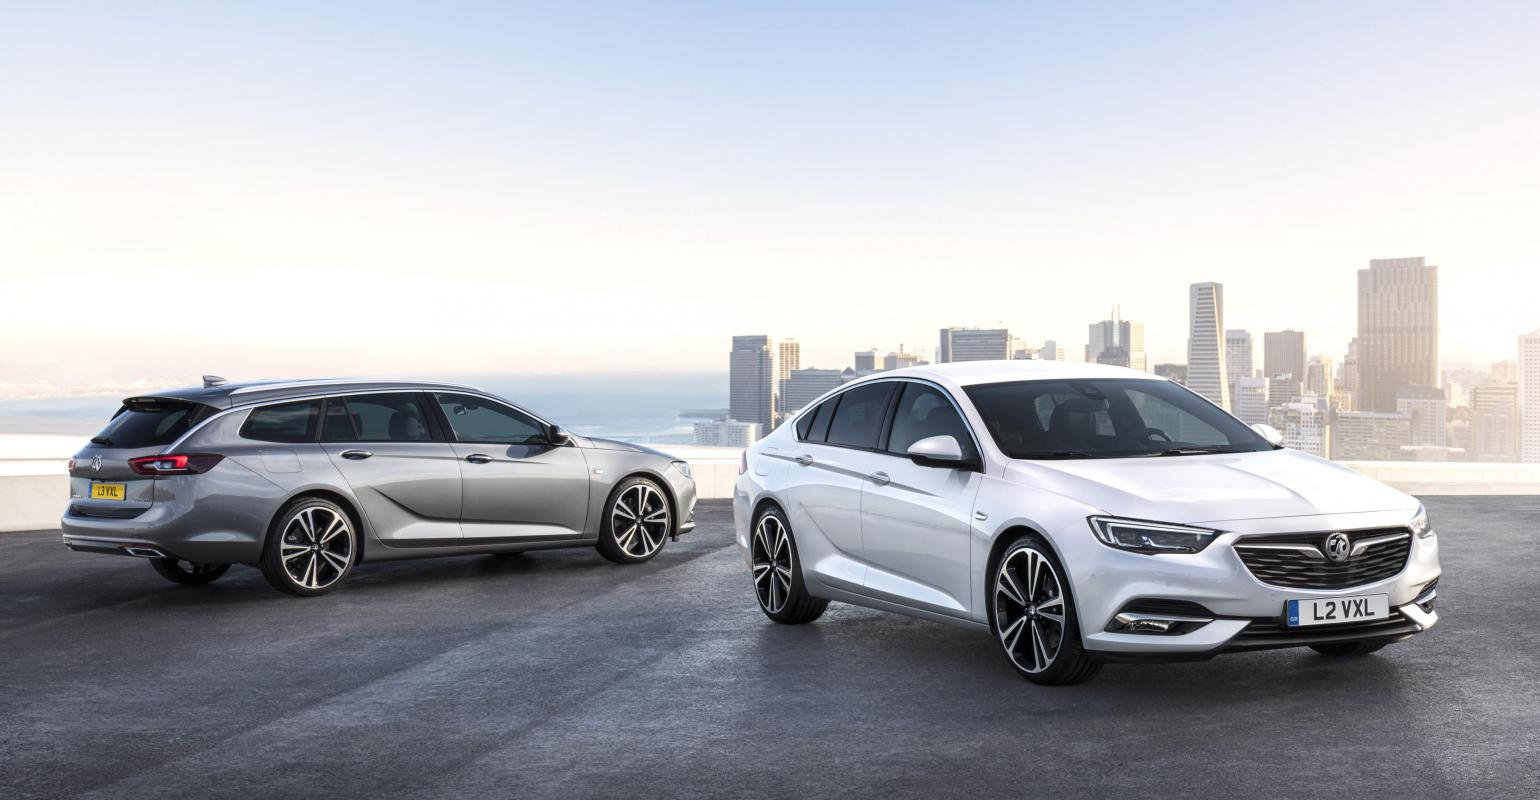 Vauxhall New Insignia Sports Tourer Loses Weight Gains Features Car Lightens Up